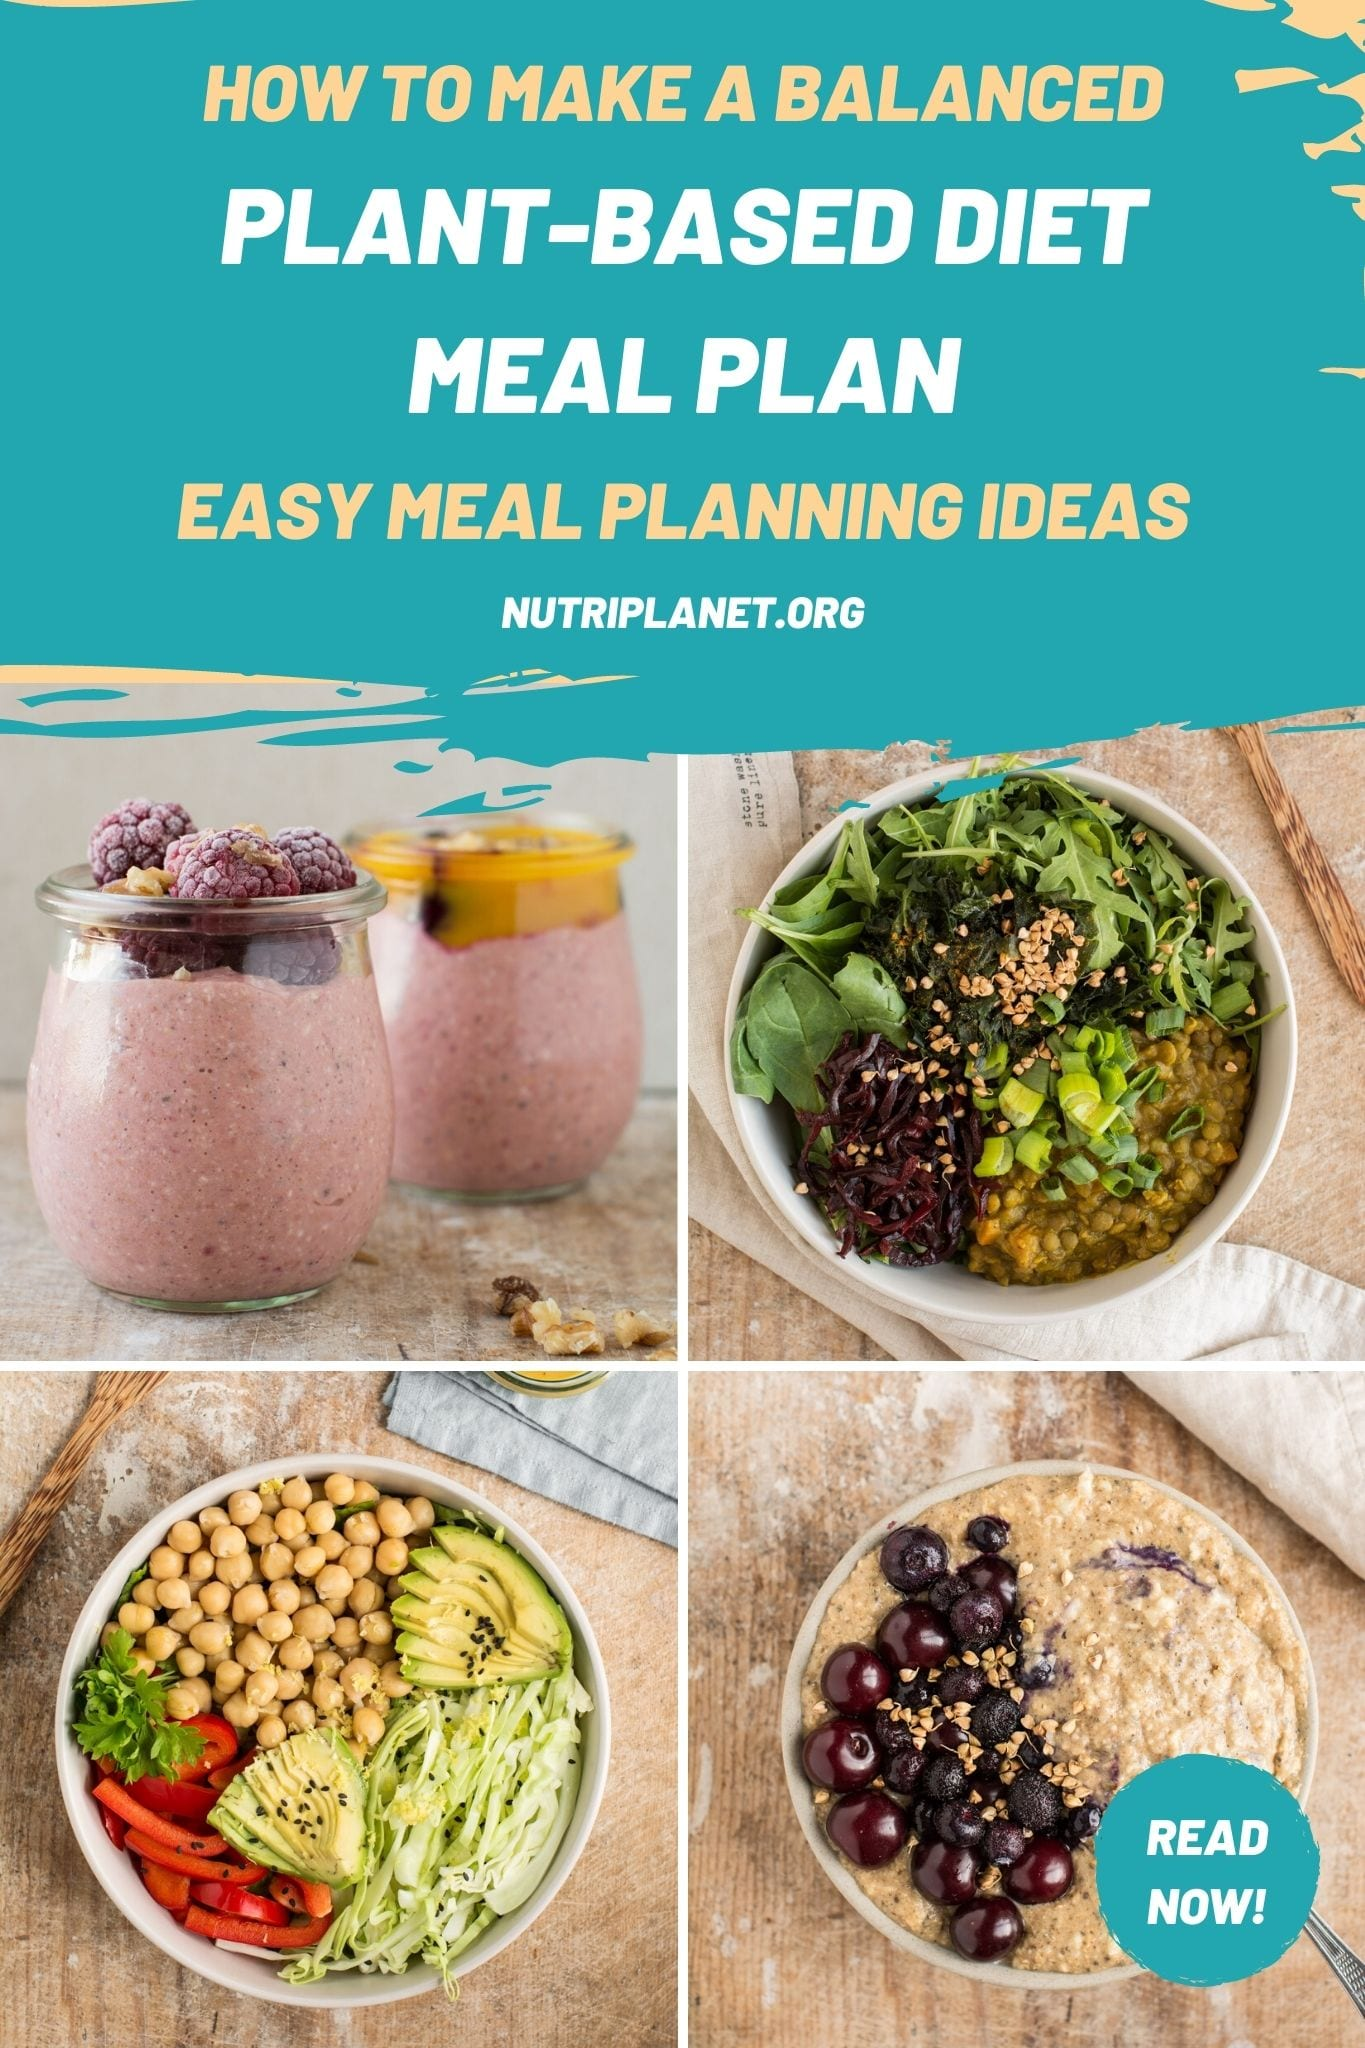 How to make a balanced plant-based diet meal plan. Easy meal planning ideas.